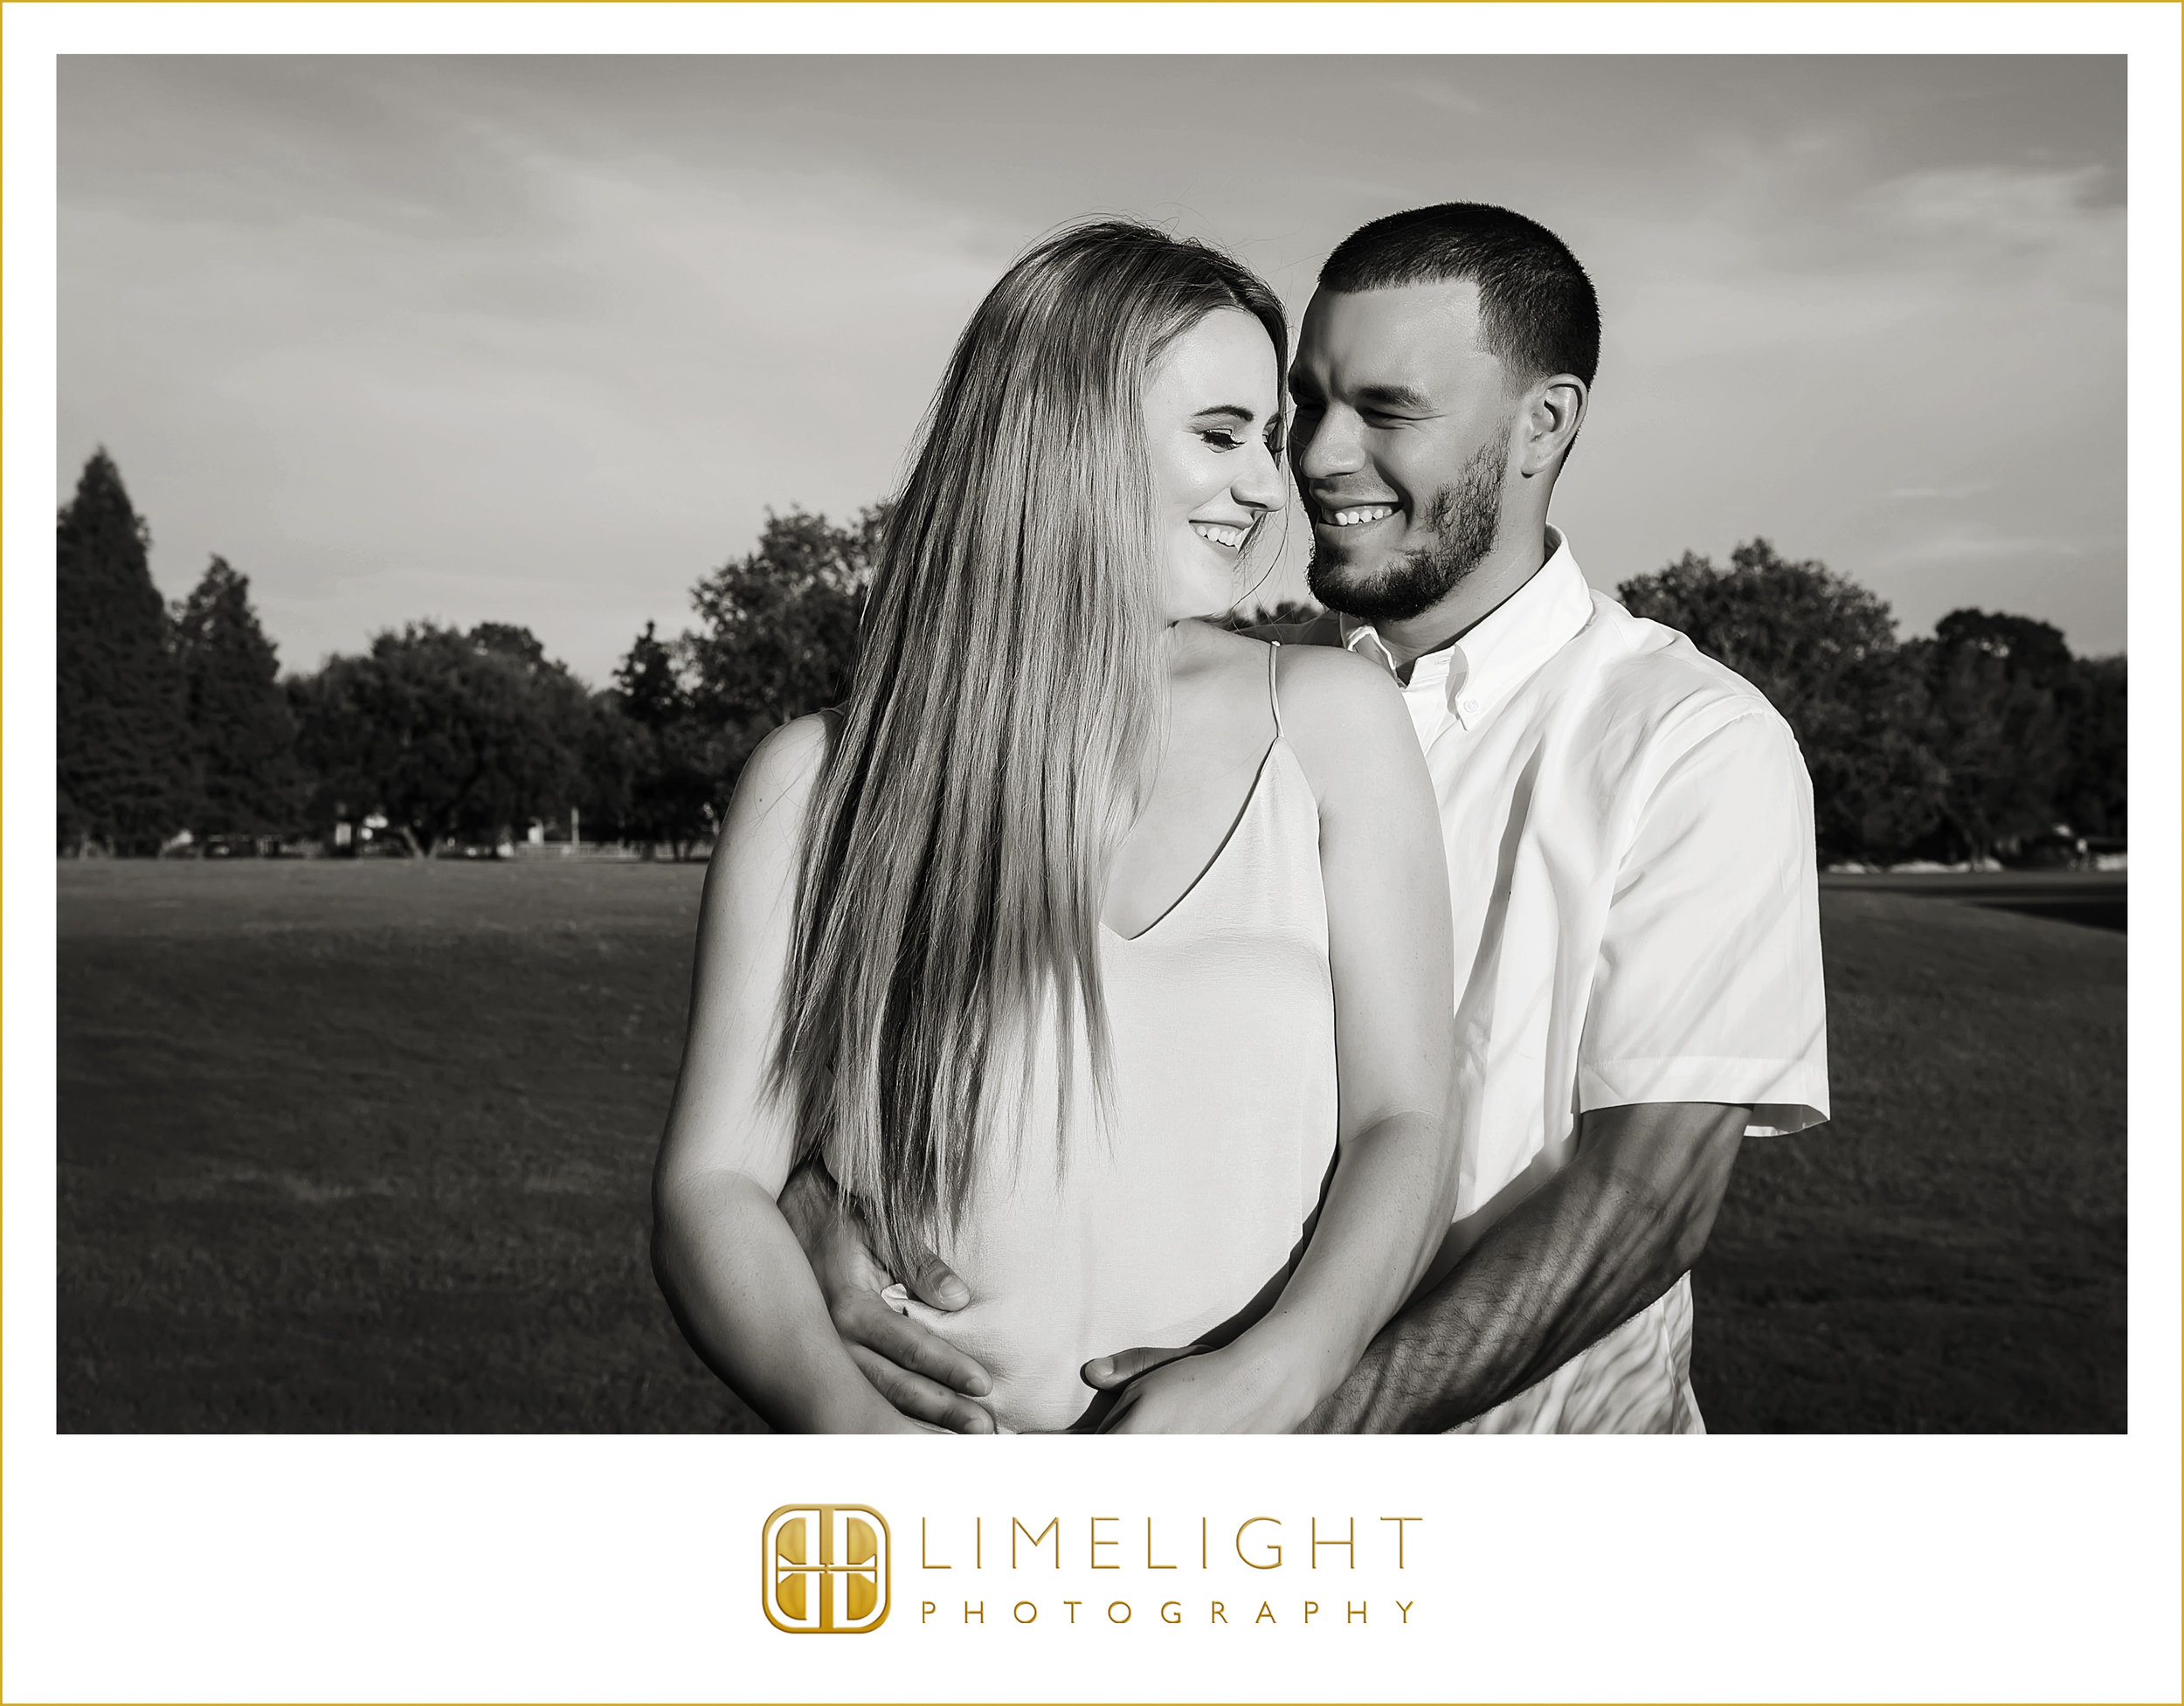 Mr. & Mrs. to be | Portrait | Engagement